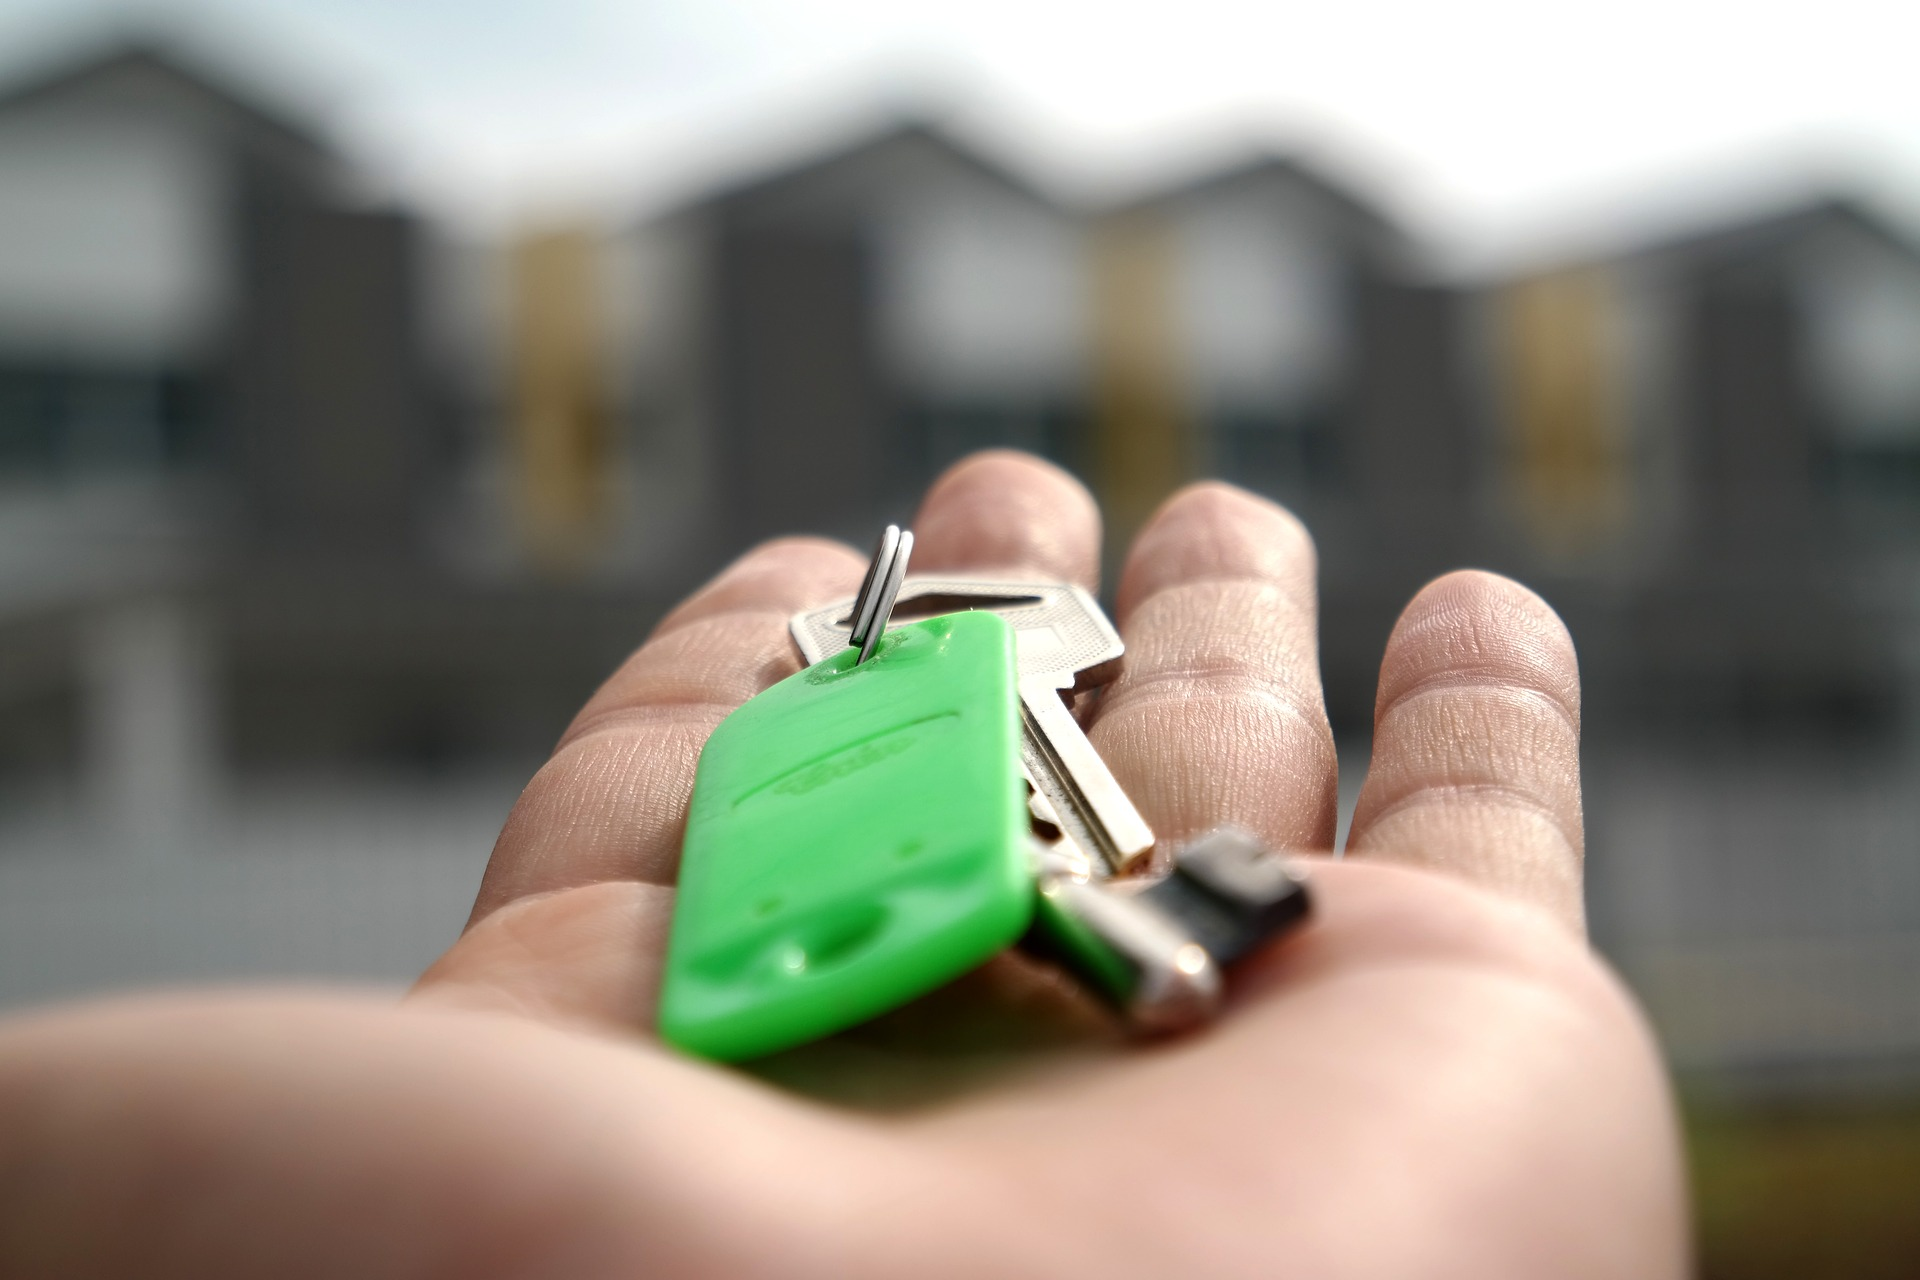 Keys to new property in hand